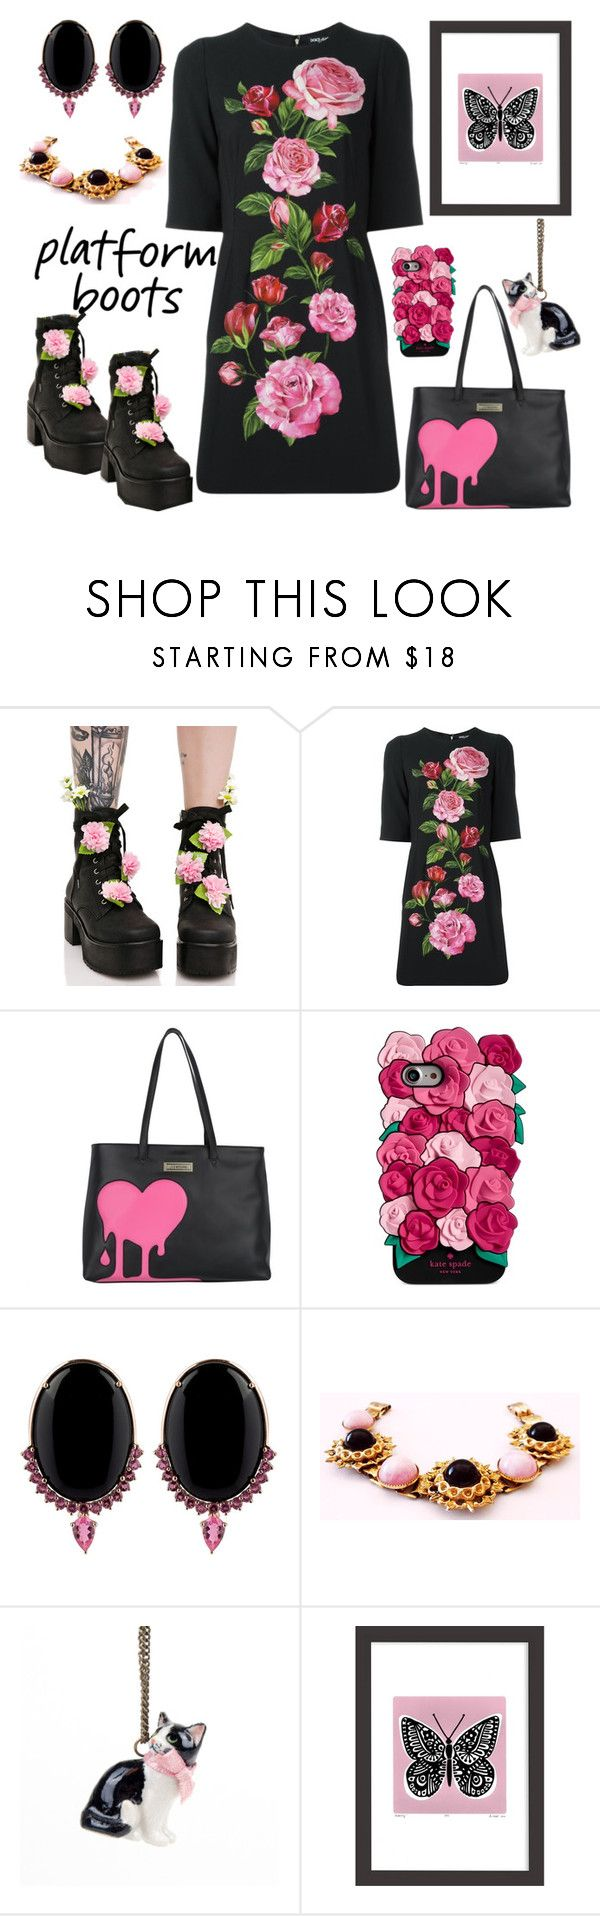 """Girls' Night Out-Platform Boots"" by yournightnurse ❤ liked on Polyvore featuring Sugarbaby, Dolce&Gabbana, Moschino, Kate Spade, Joana Salazar, And Mary, Lu West and PlatformBoots"